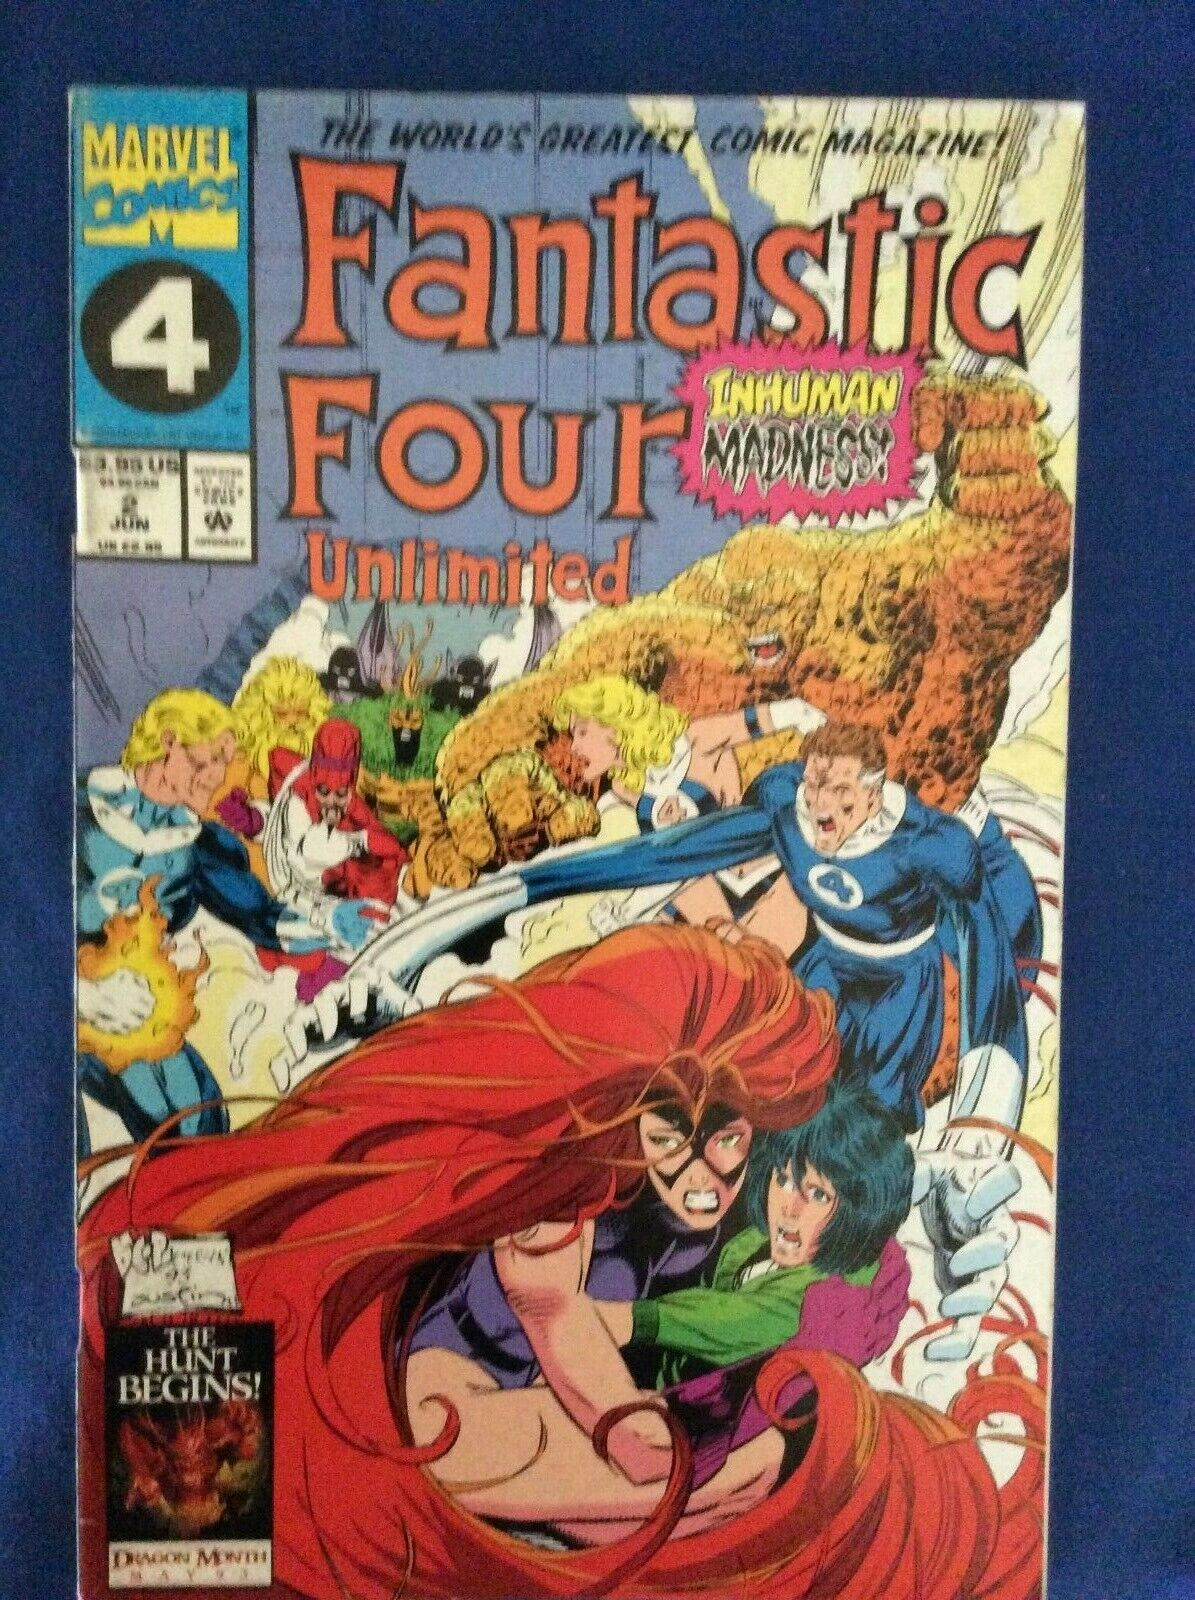 Fantastic Four Unlimited - 9 issues - Marvel Comics 1993